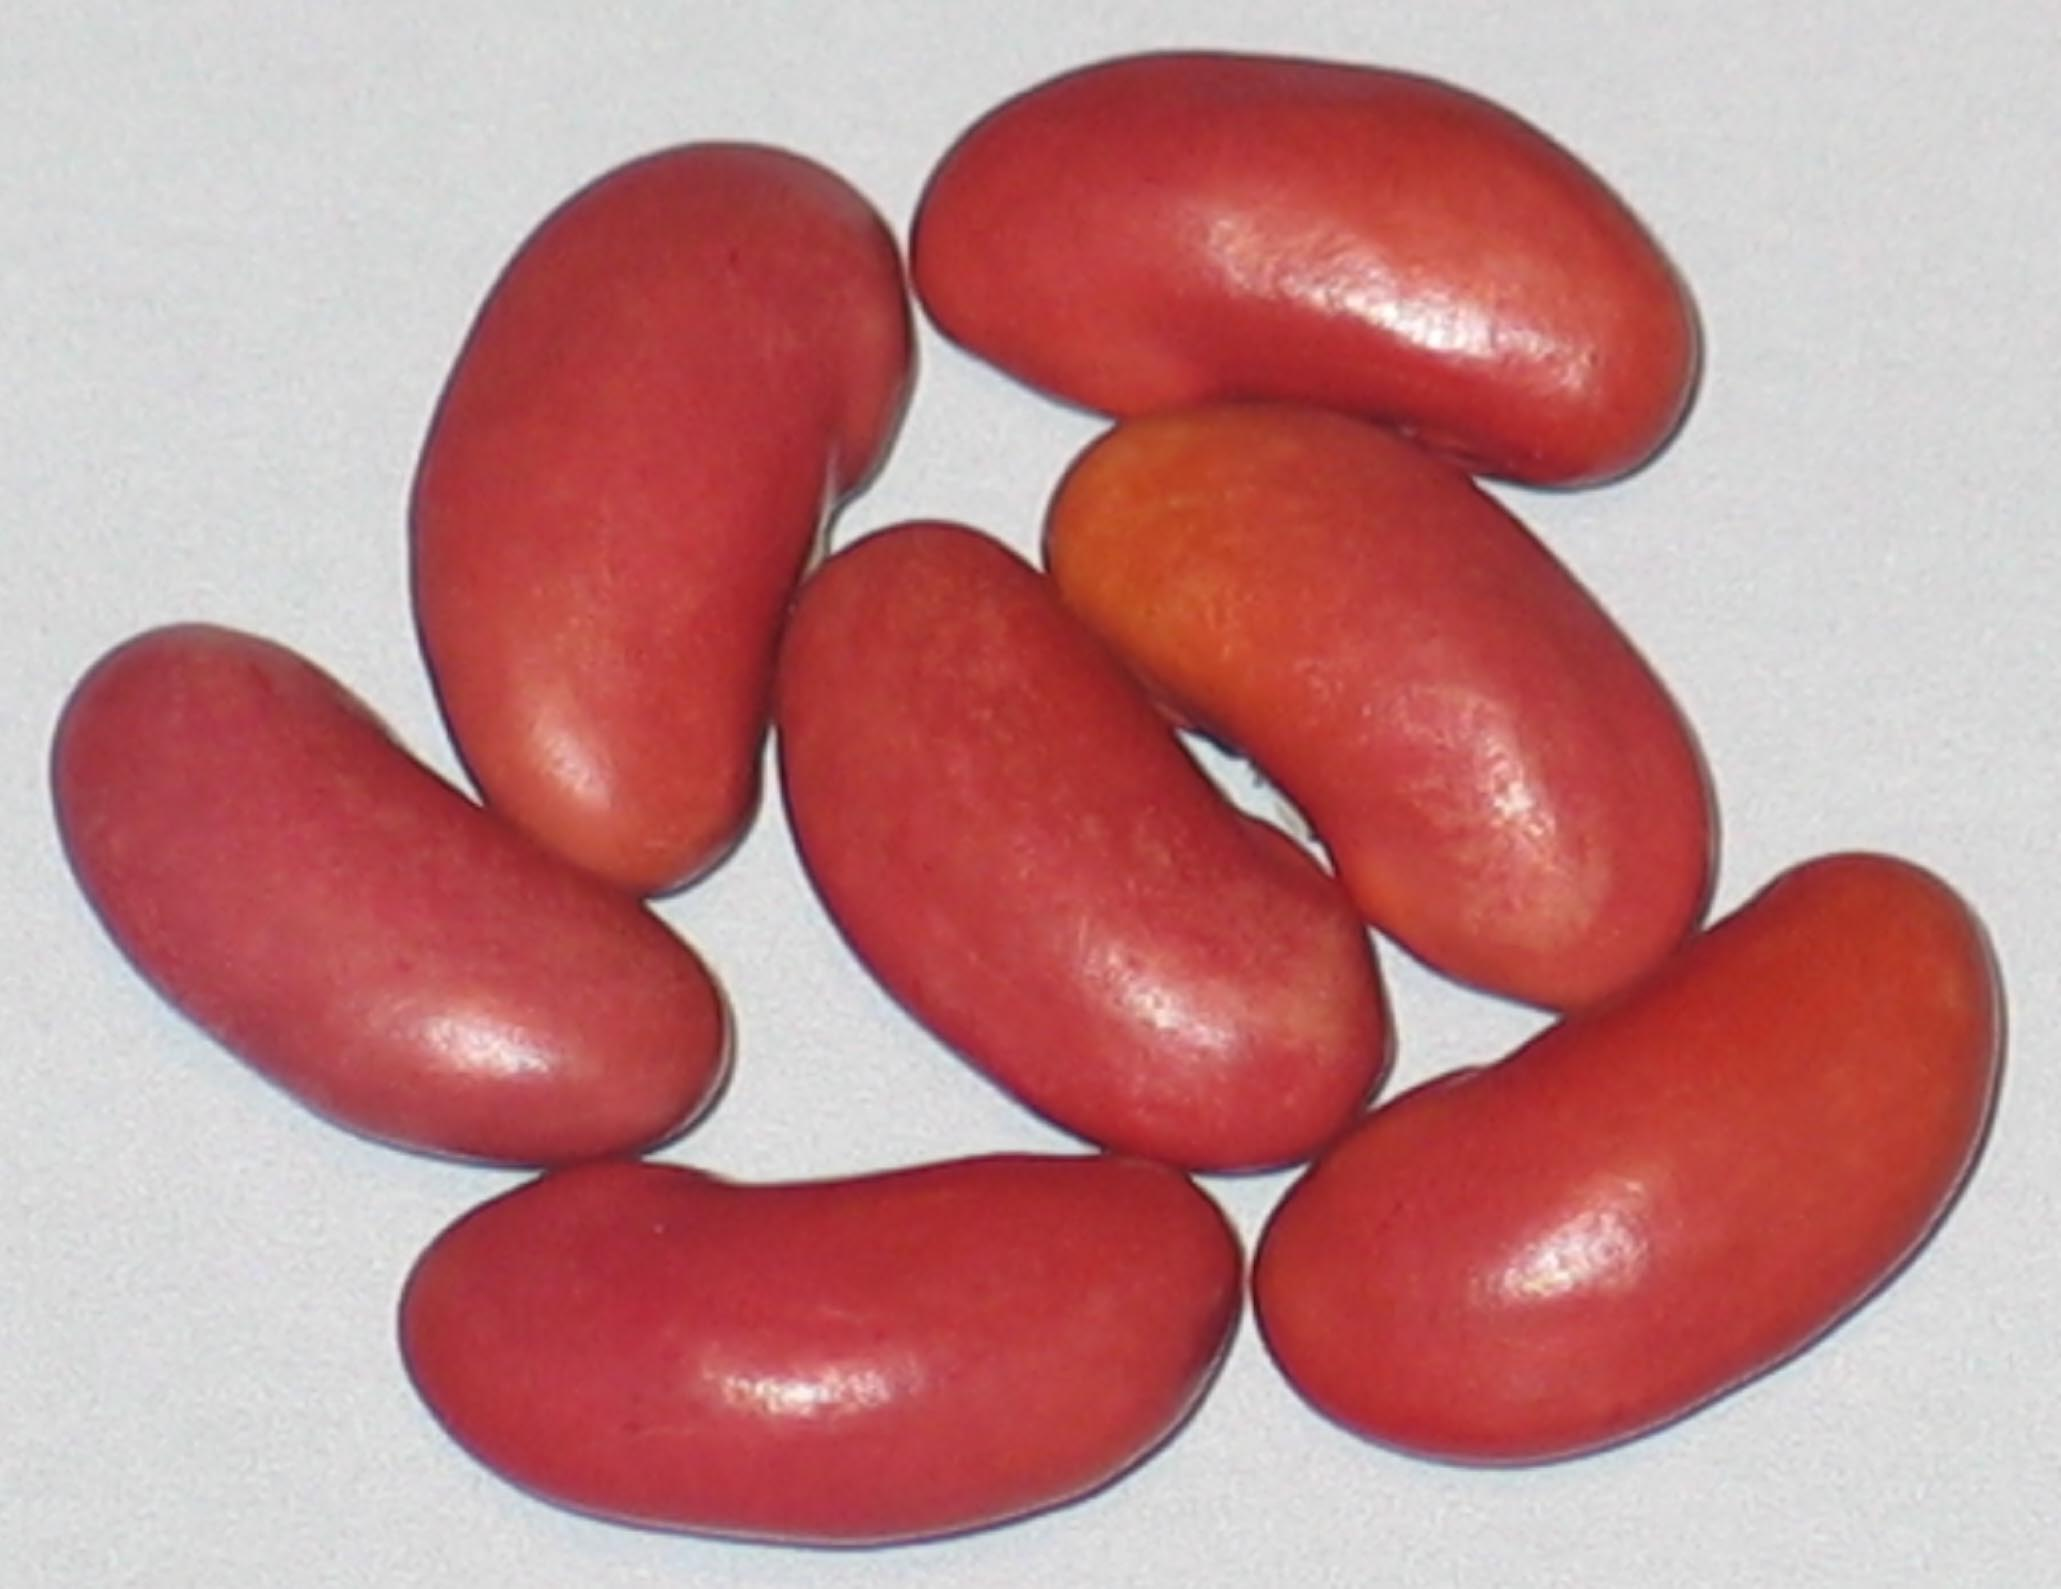 image of Feijao beans